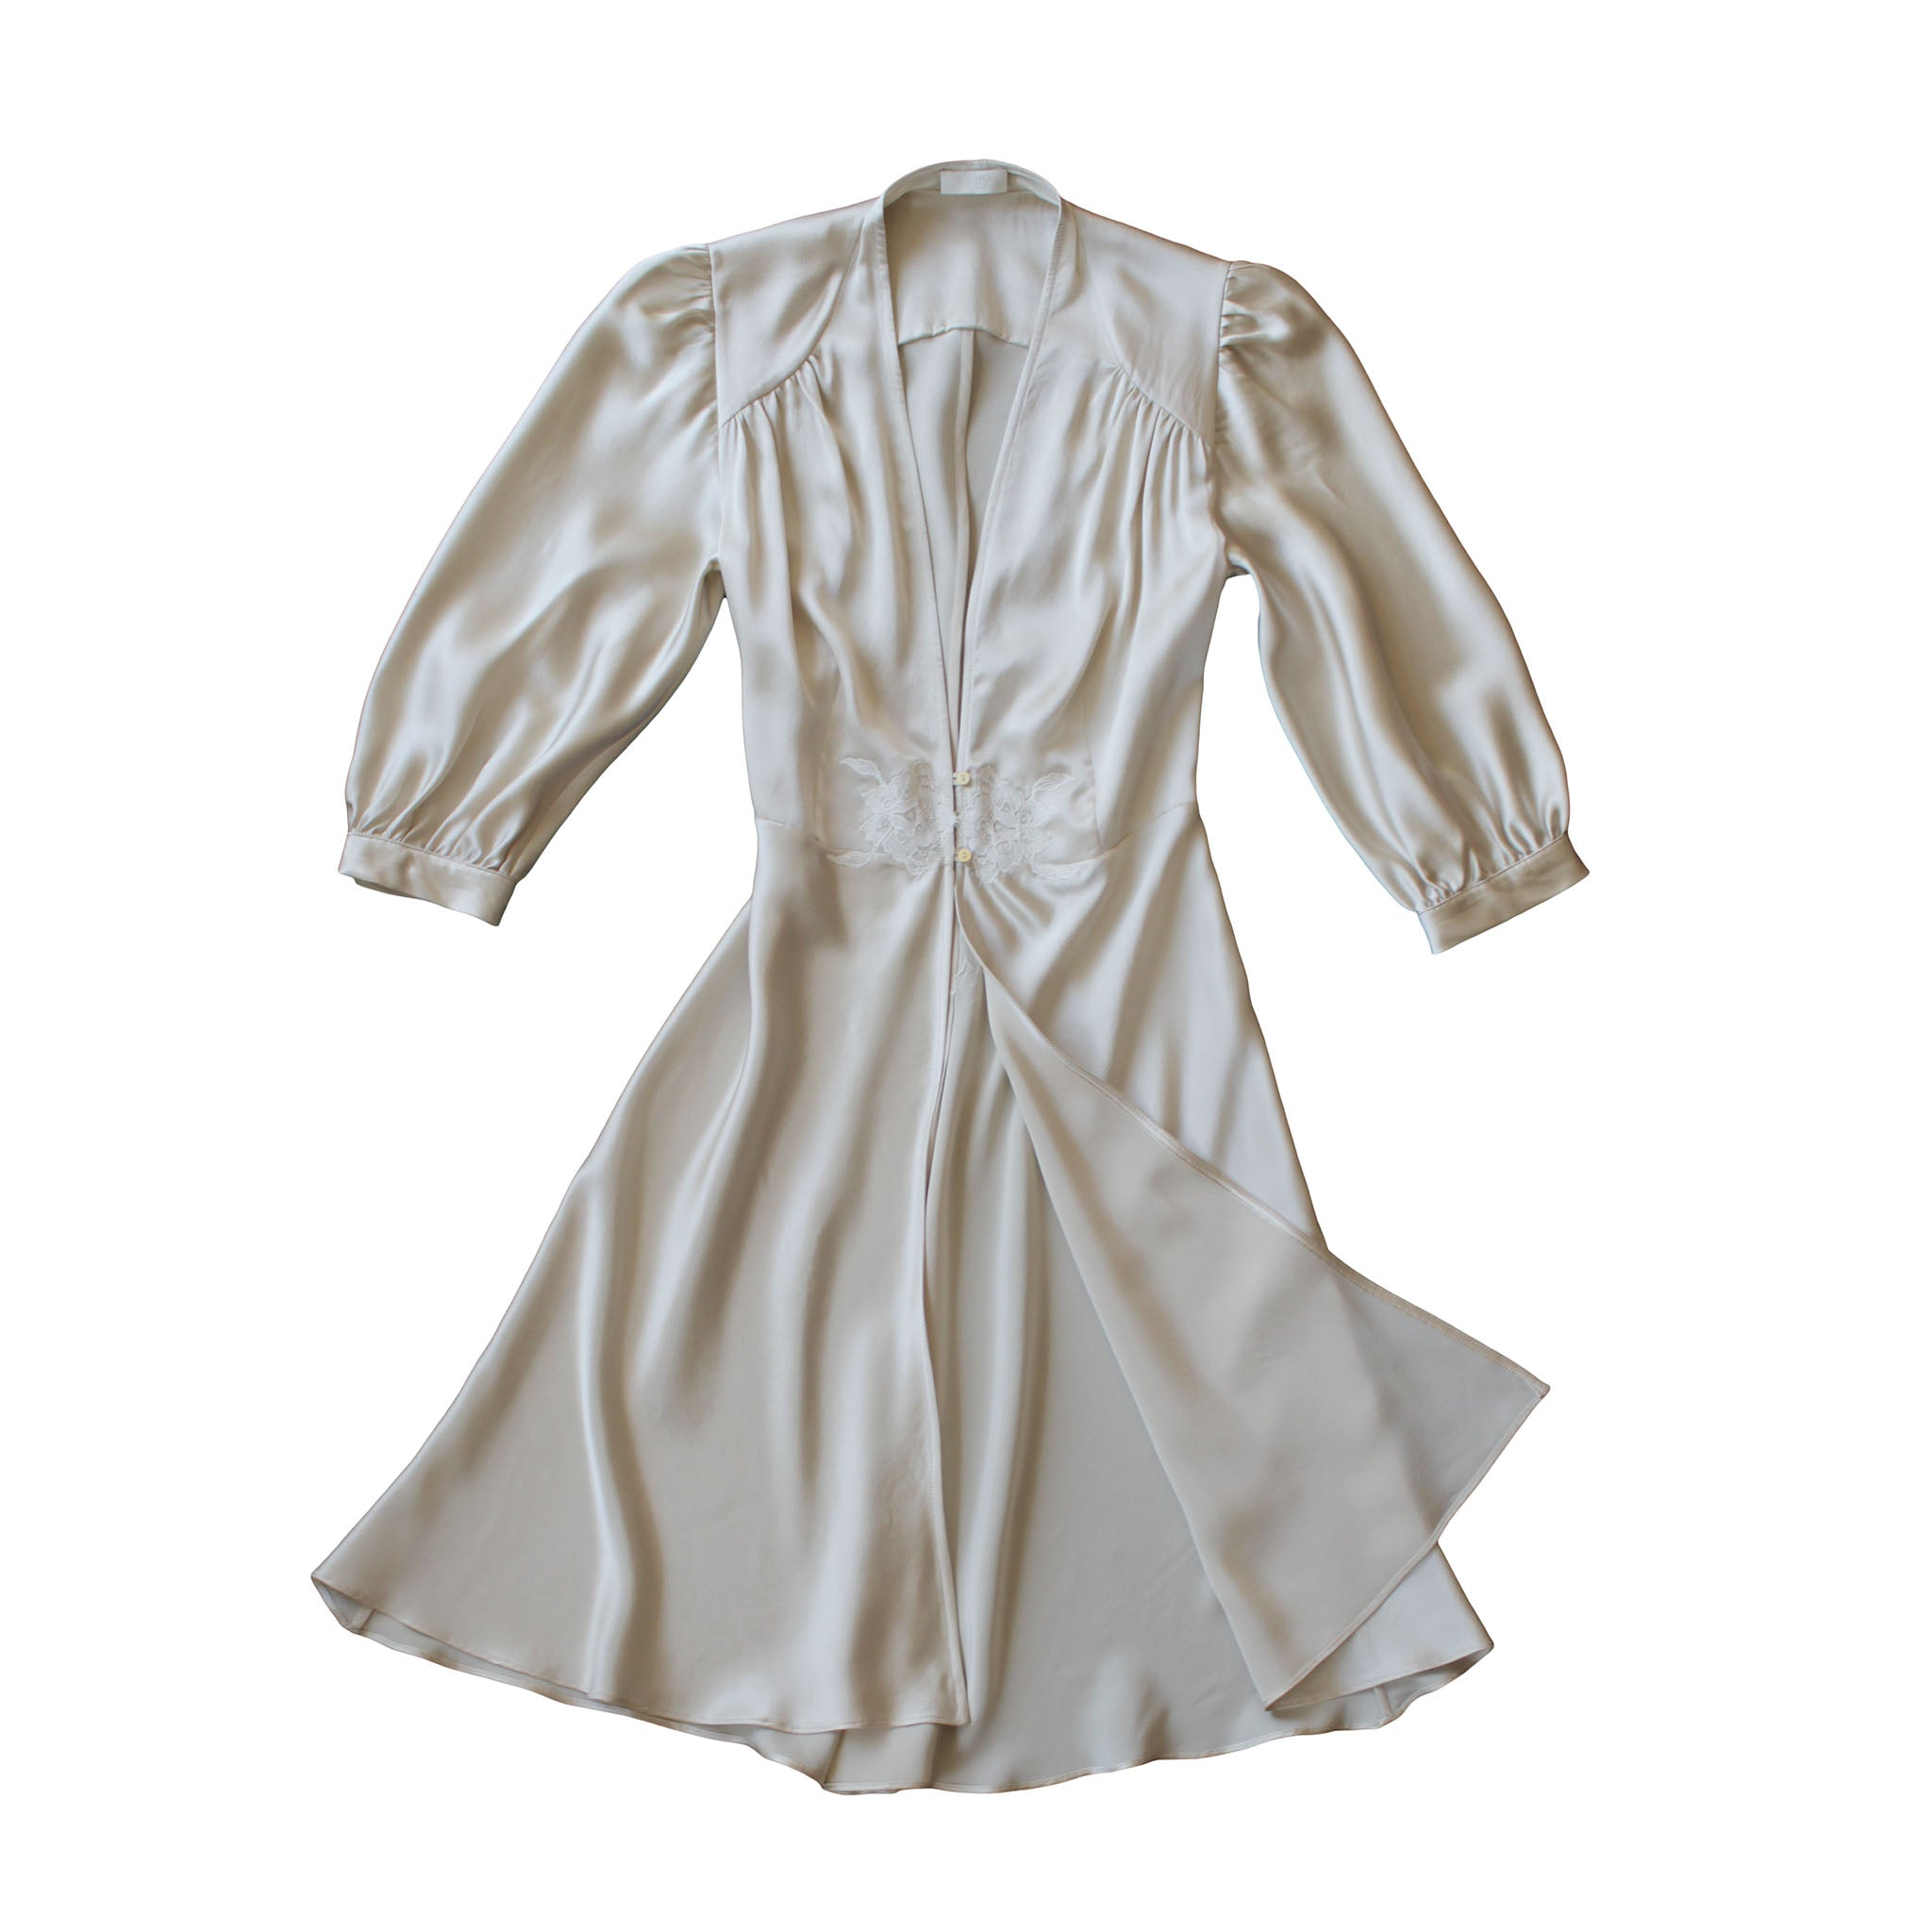 Maia Robe in Pearl Silk Charmeuse